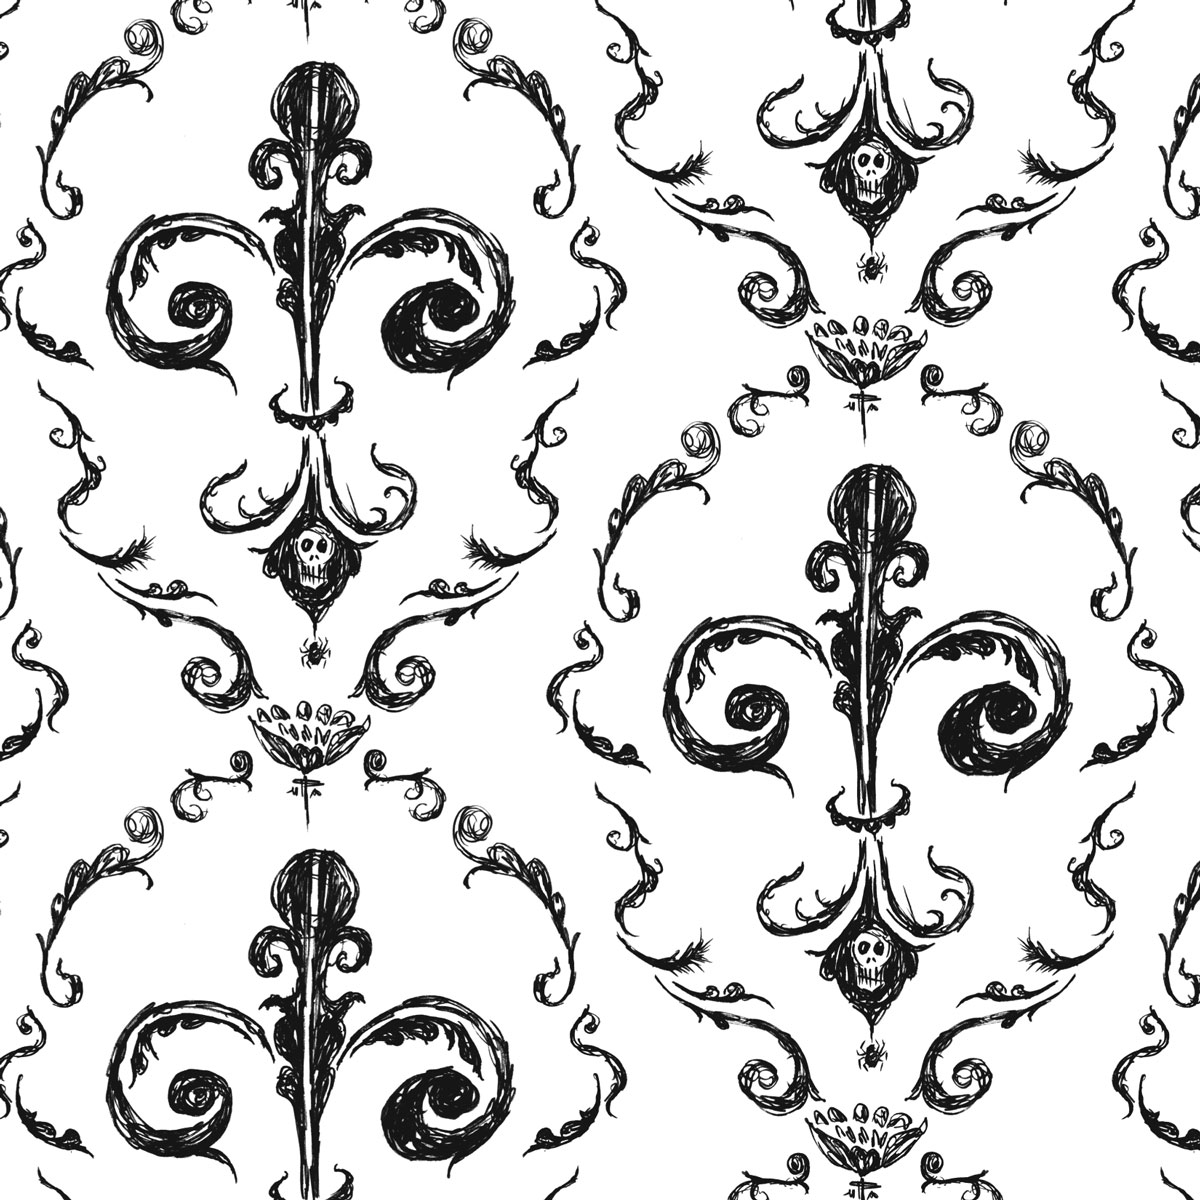 Black Victorian Pattern | Patterns Gallery